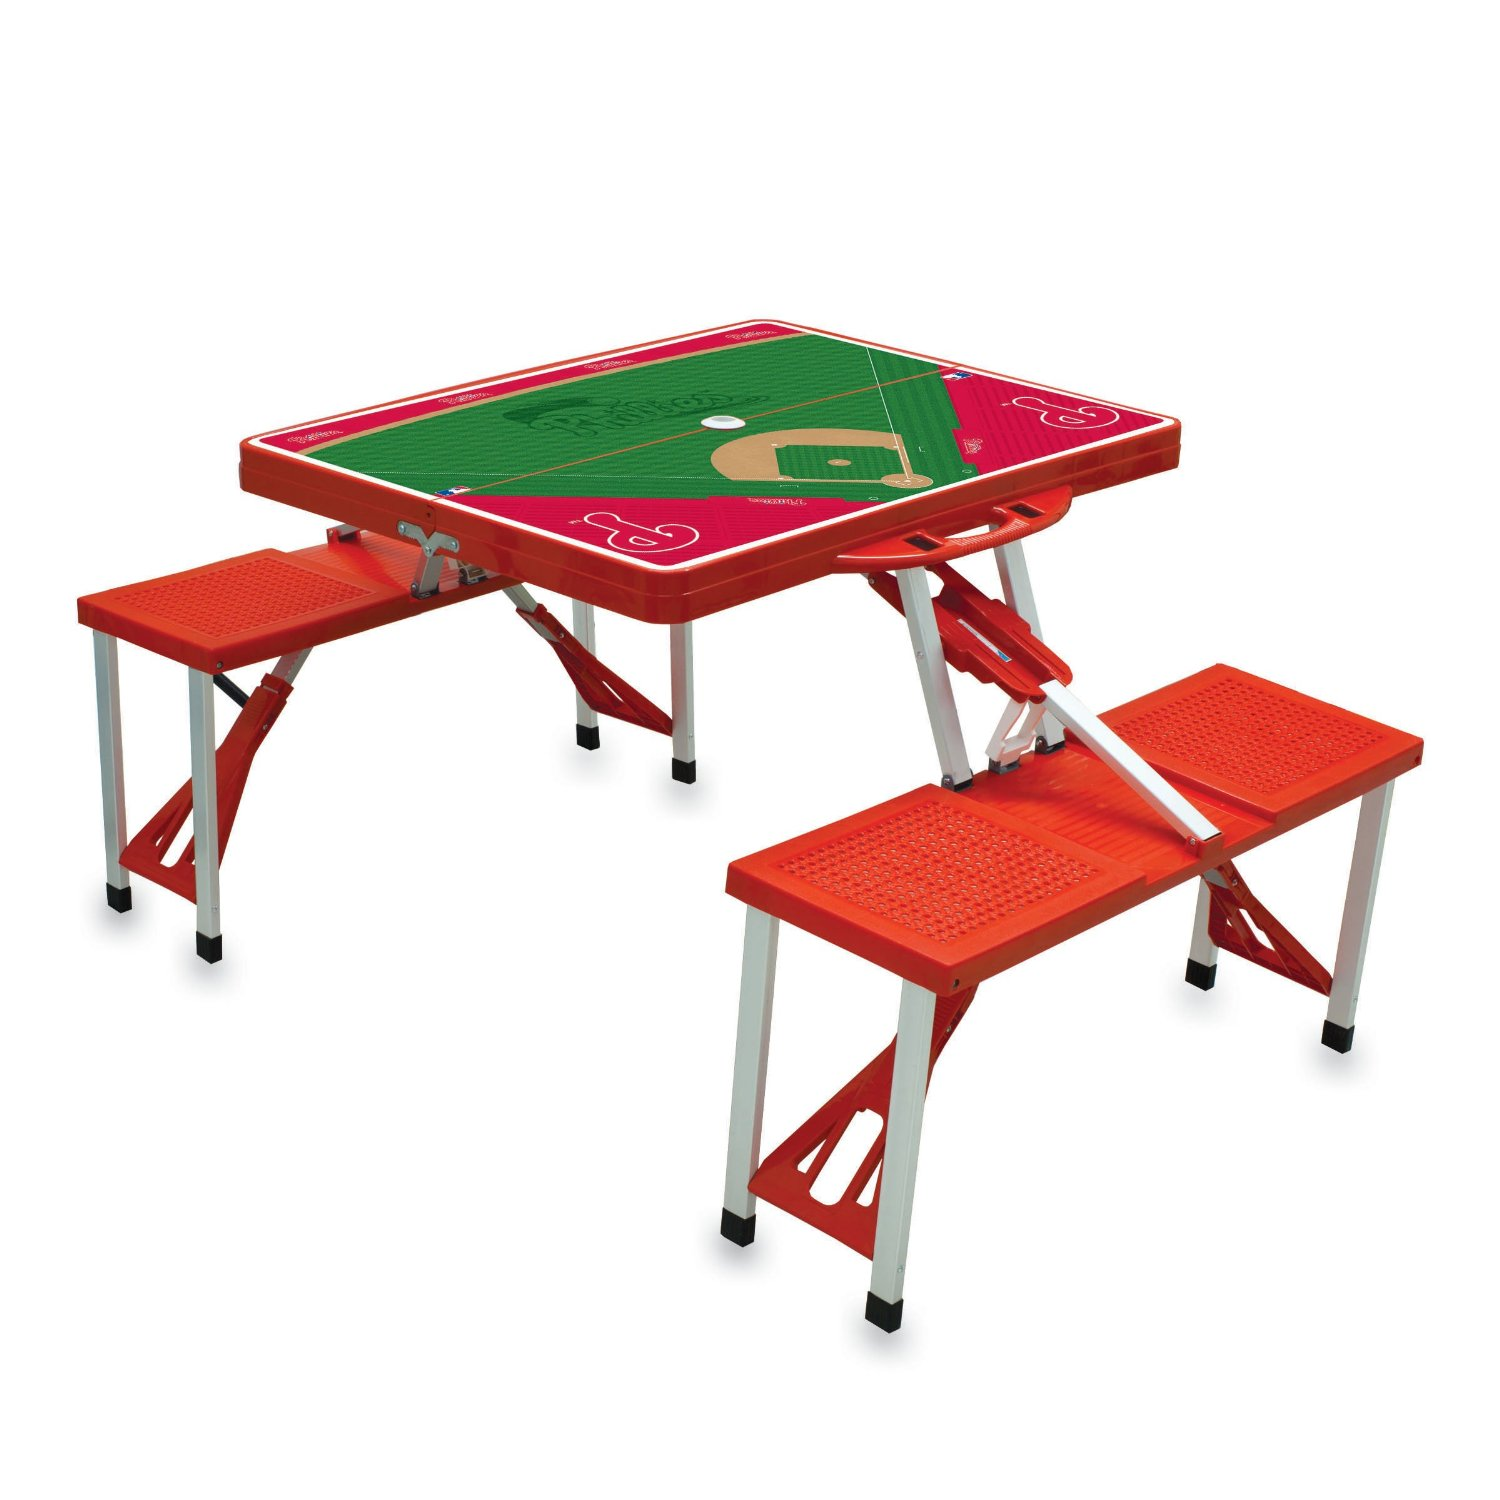 Picnic Time Portable Folding Table with Poker Design and Seating for 4 Red - 네이버쇼핑